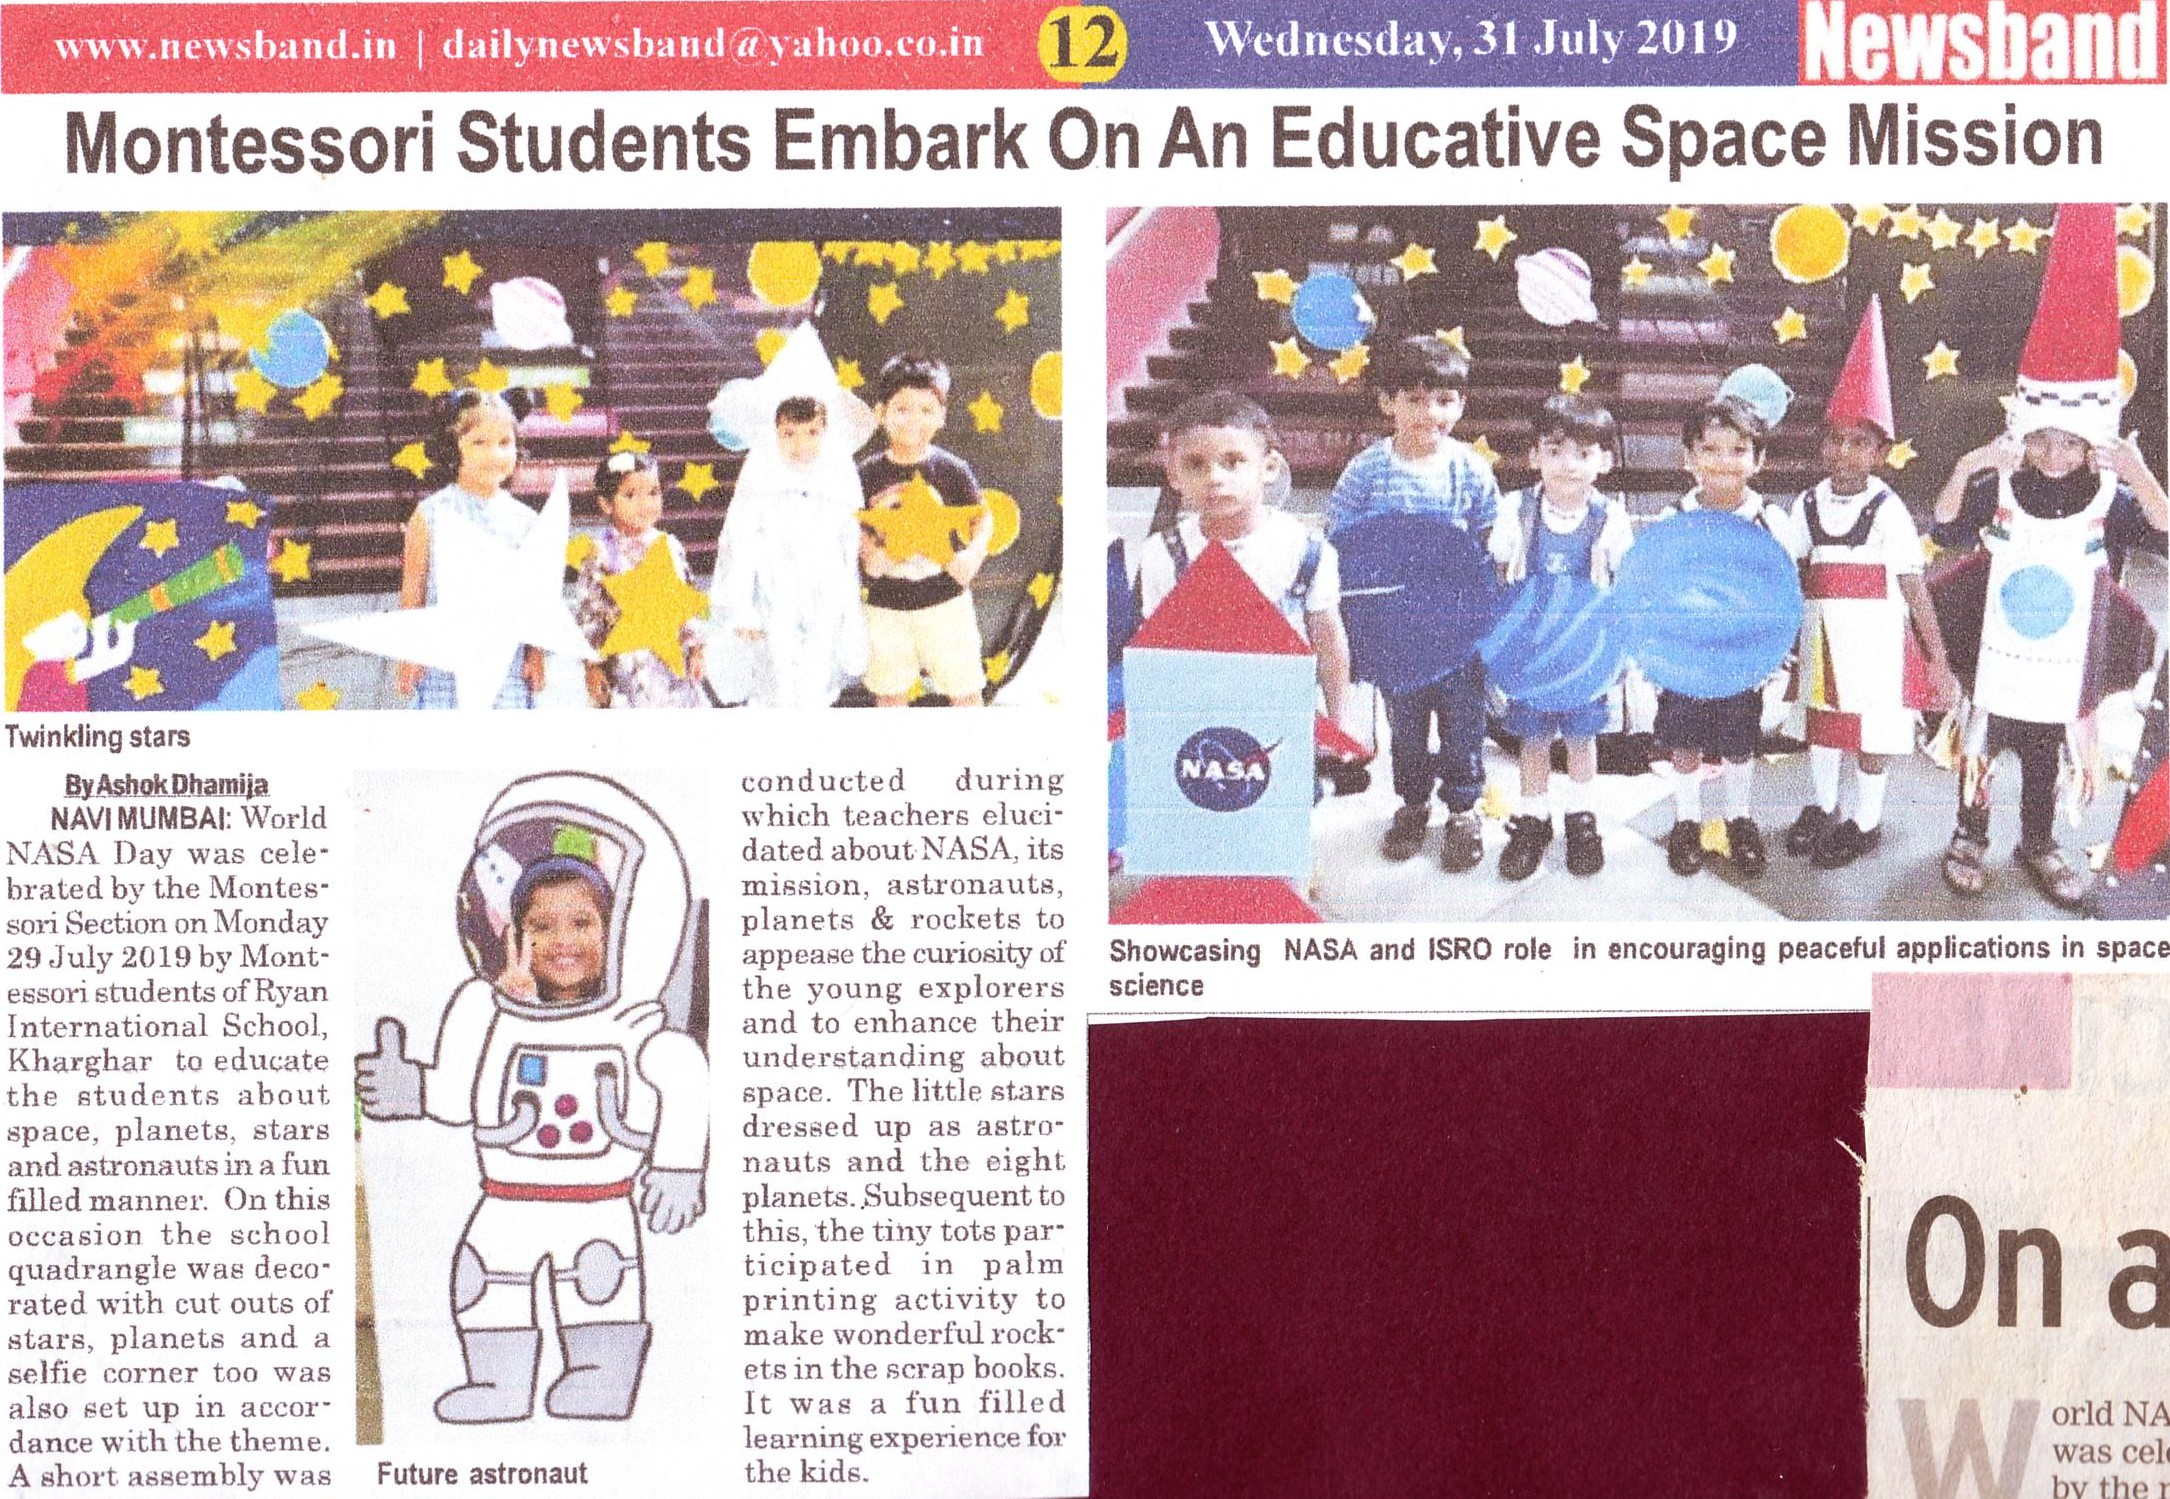 Montessori students embark on an educative space mission was mentioned in News band - Ryan International School, Kharghar - Ryan Group